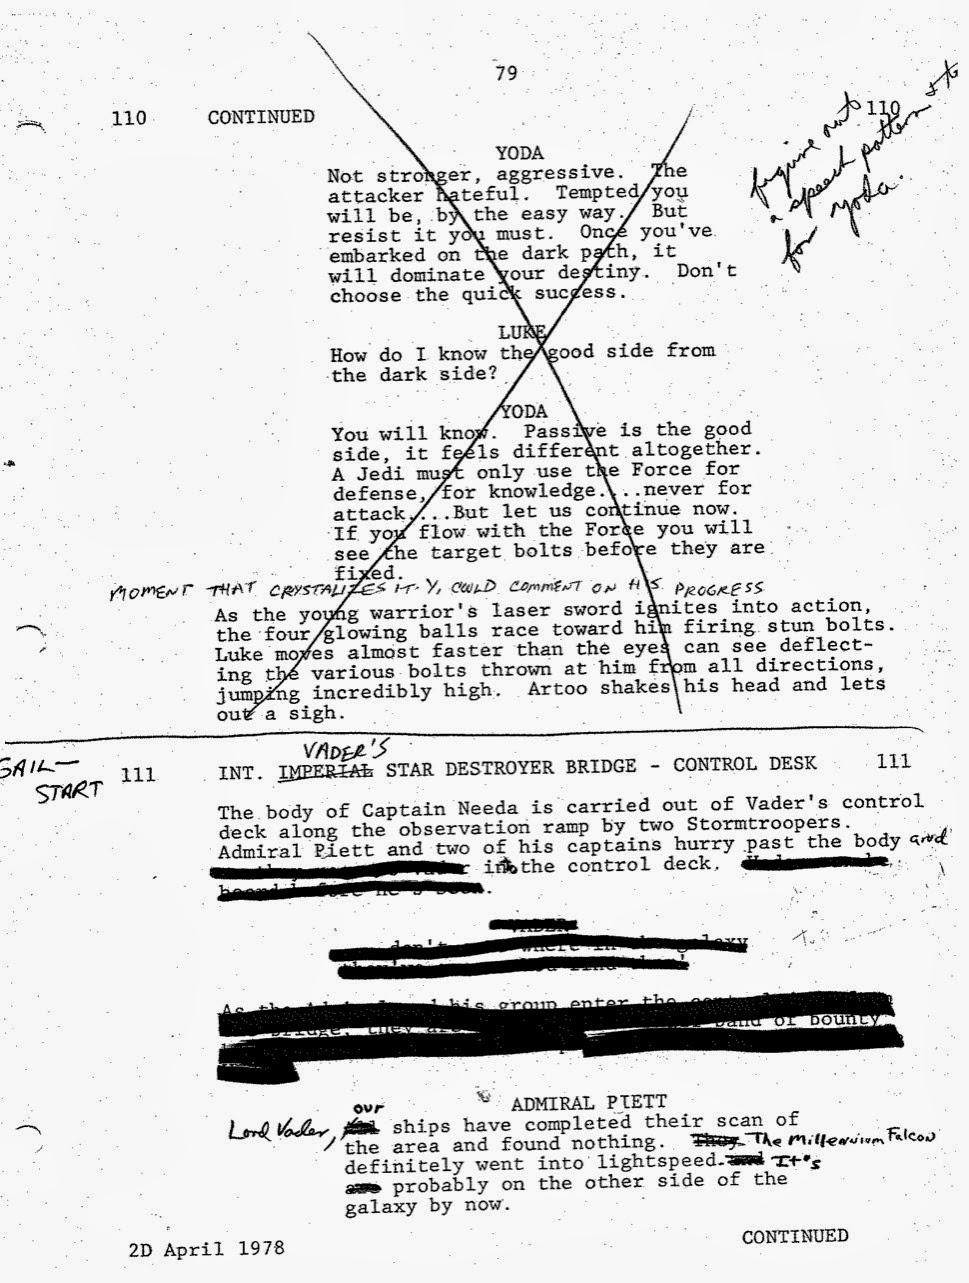 Lawrence Kasdan's Handwritten Screenplay for The Empire Strikes Back (2)